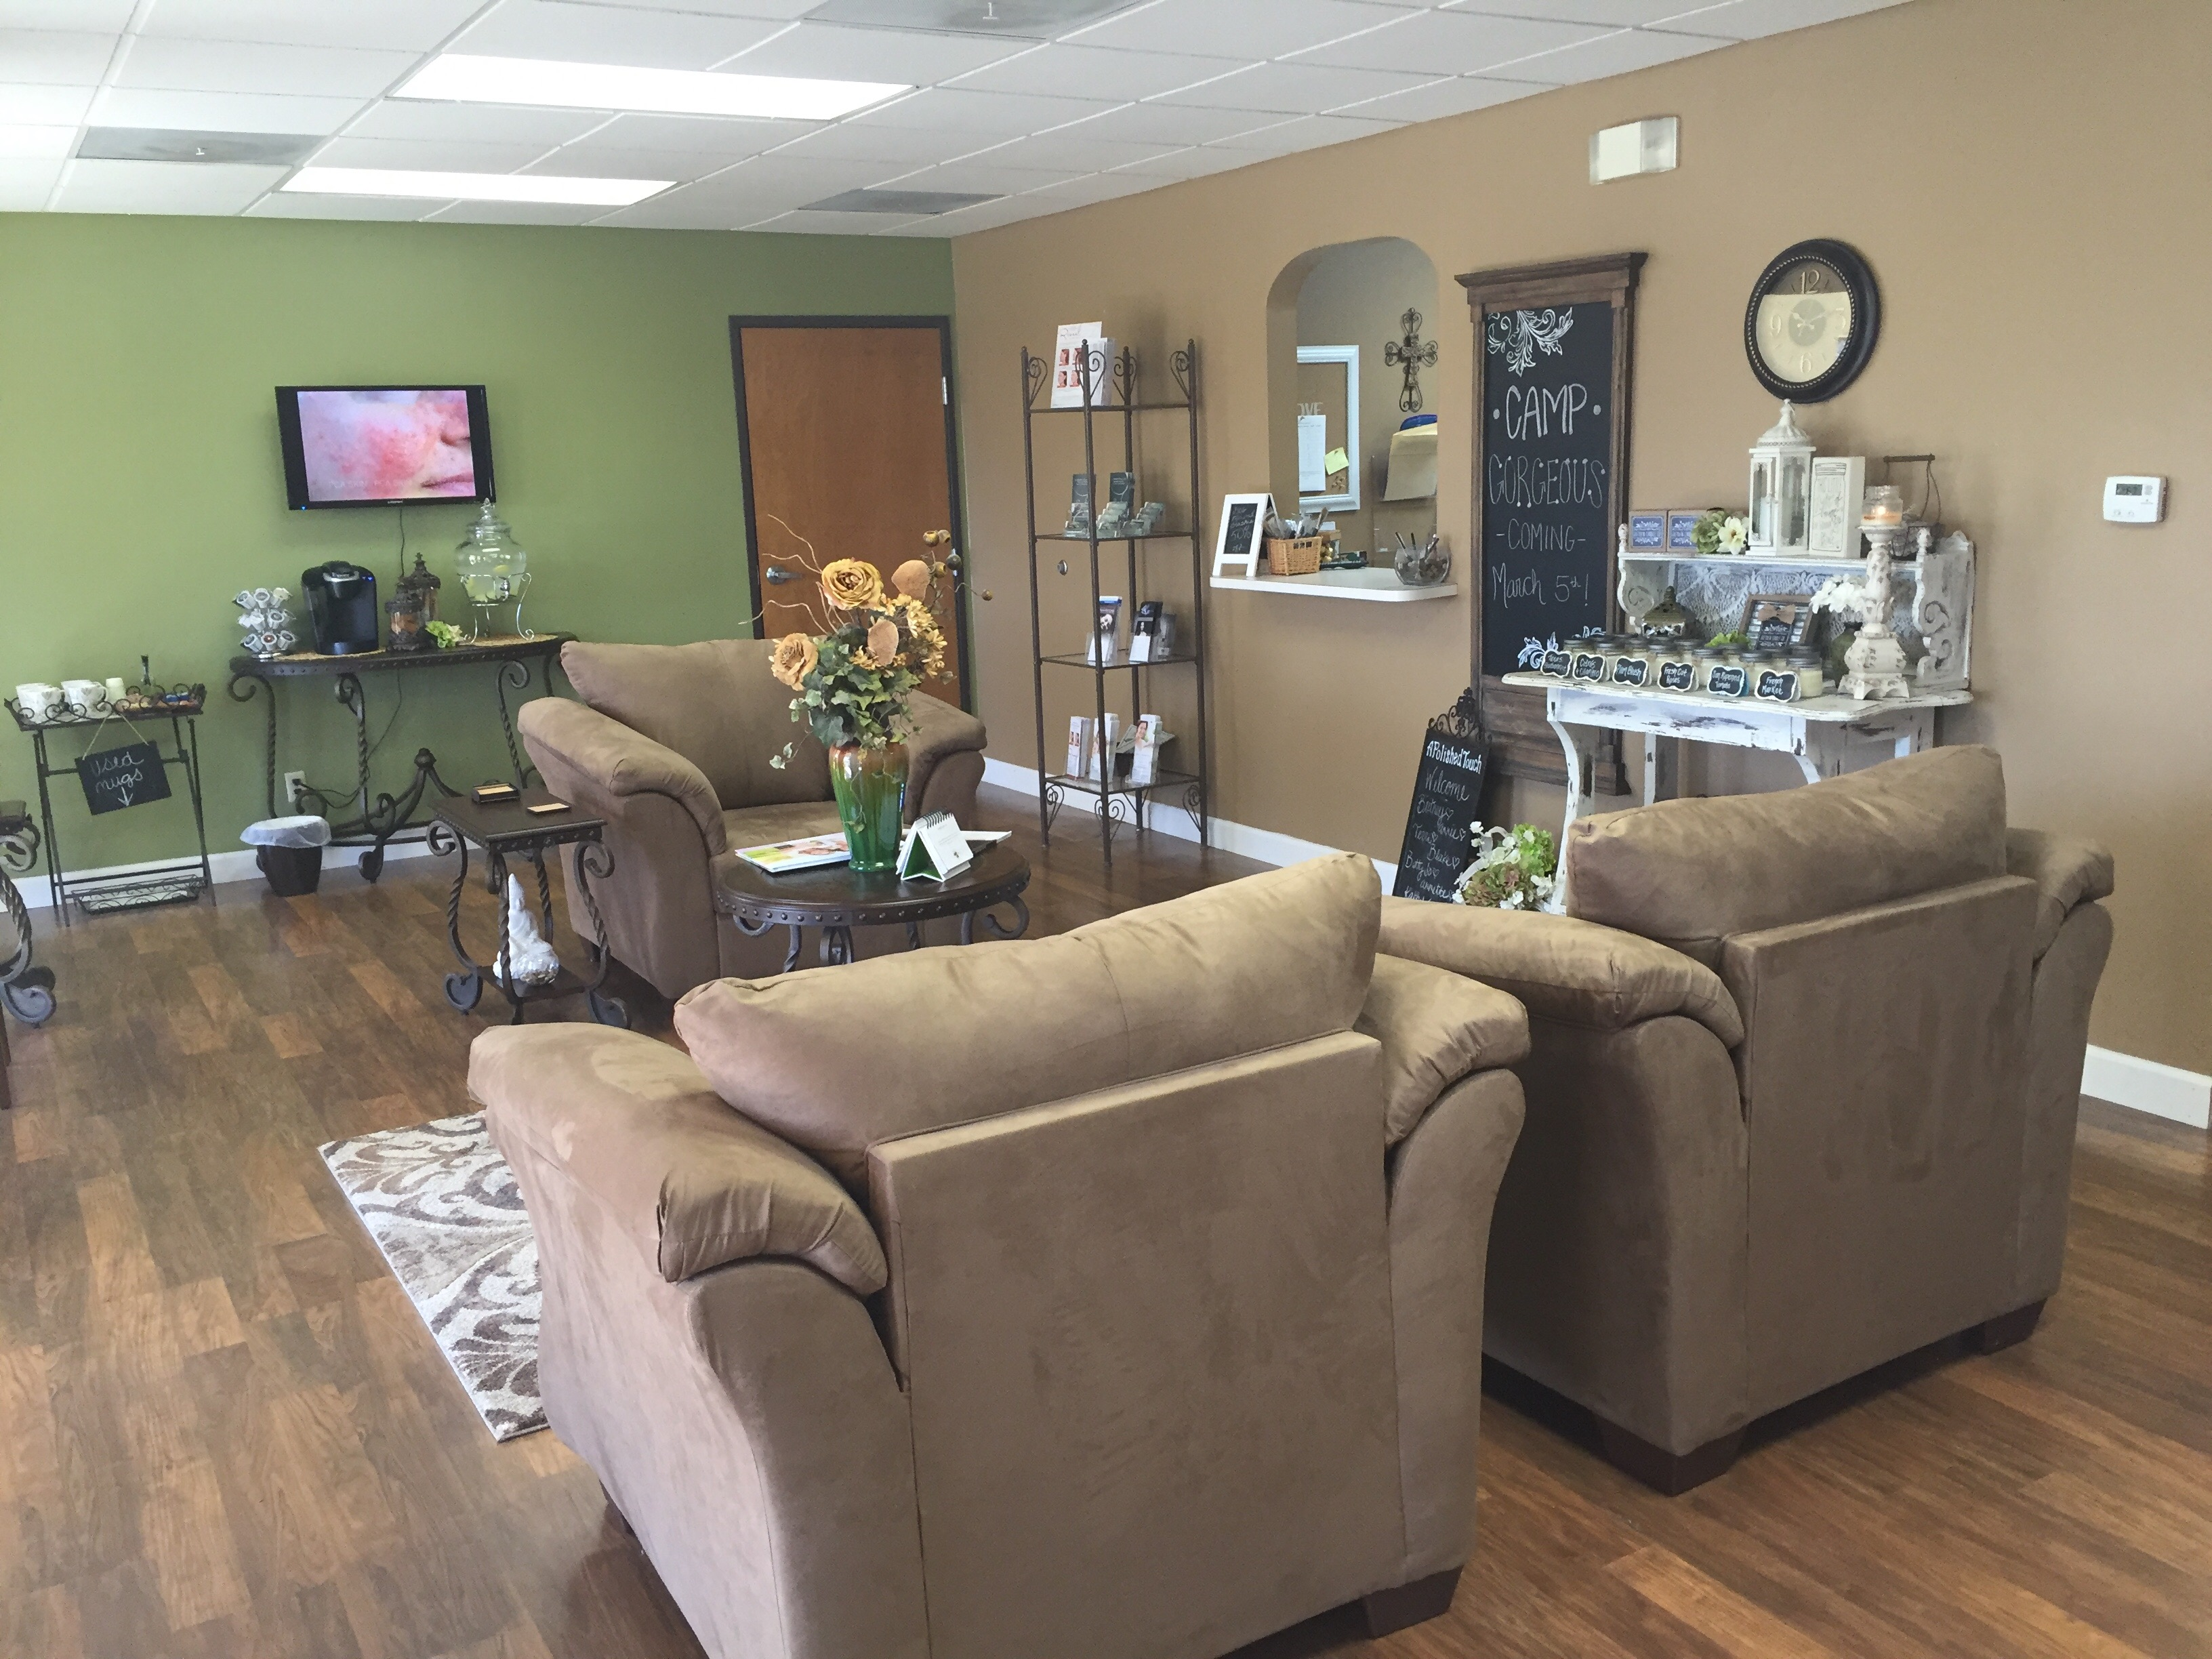 A Polished Touch Relaxation Medi Spa - Salon and Spa in Wimberley, TX